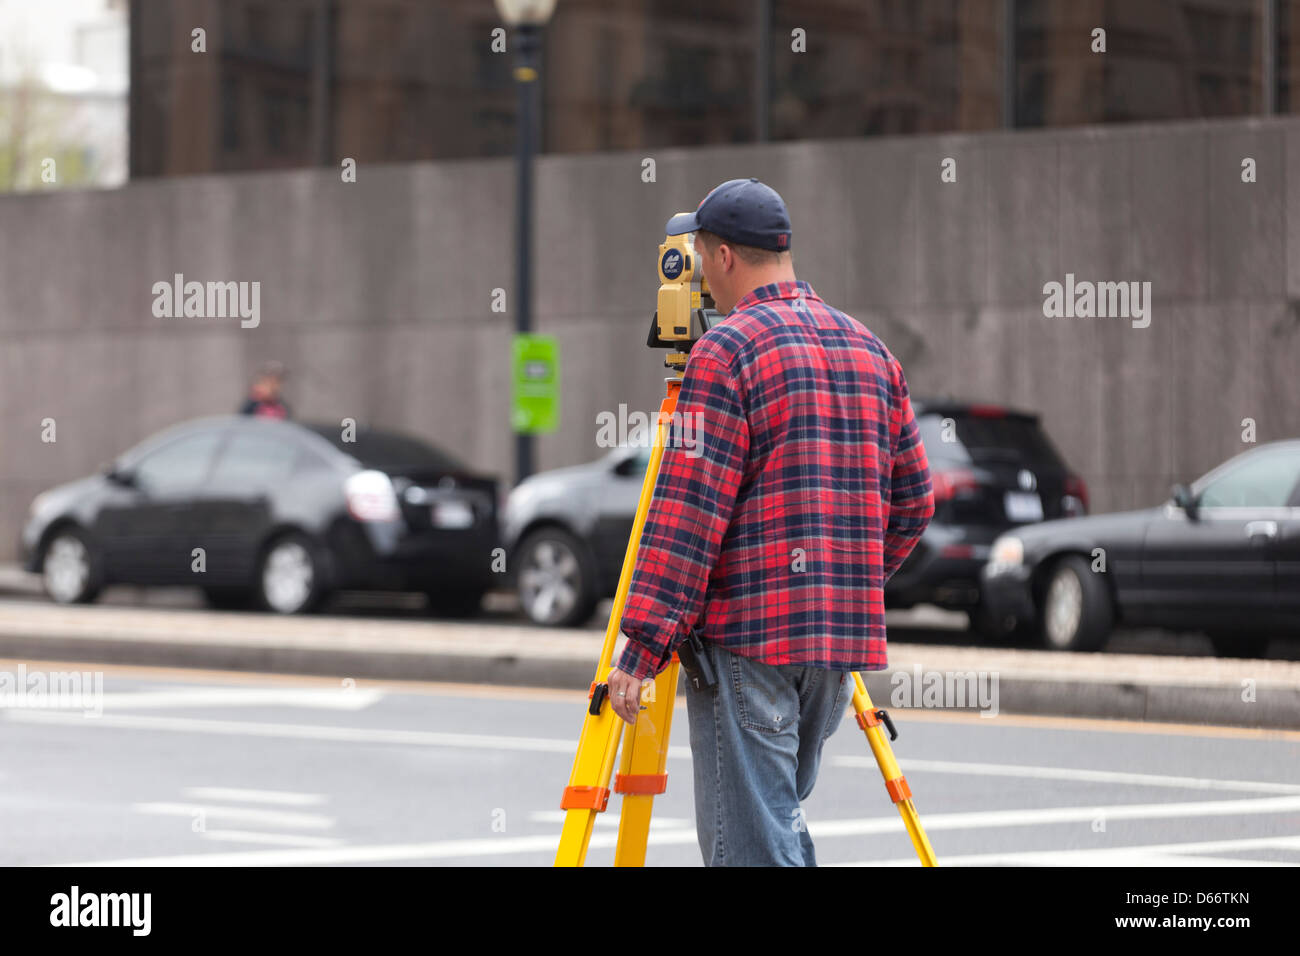 Land surveyor looking through a digital theodolite - USA - Stock Image